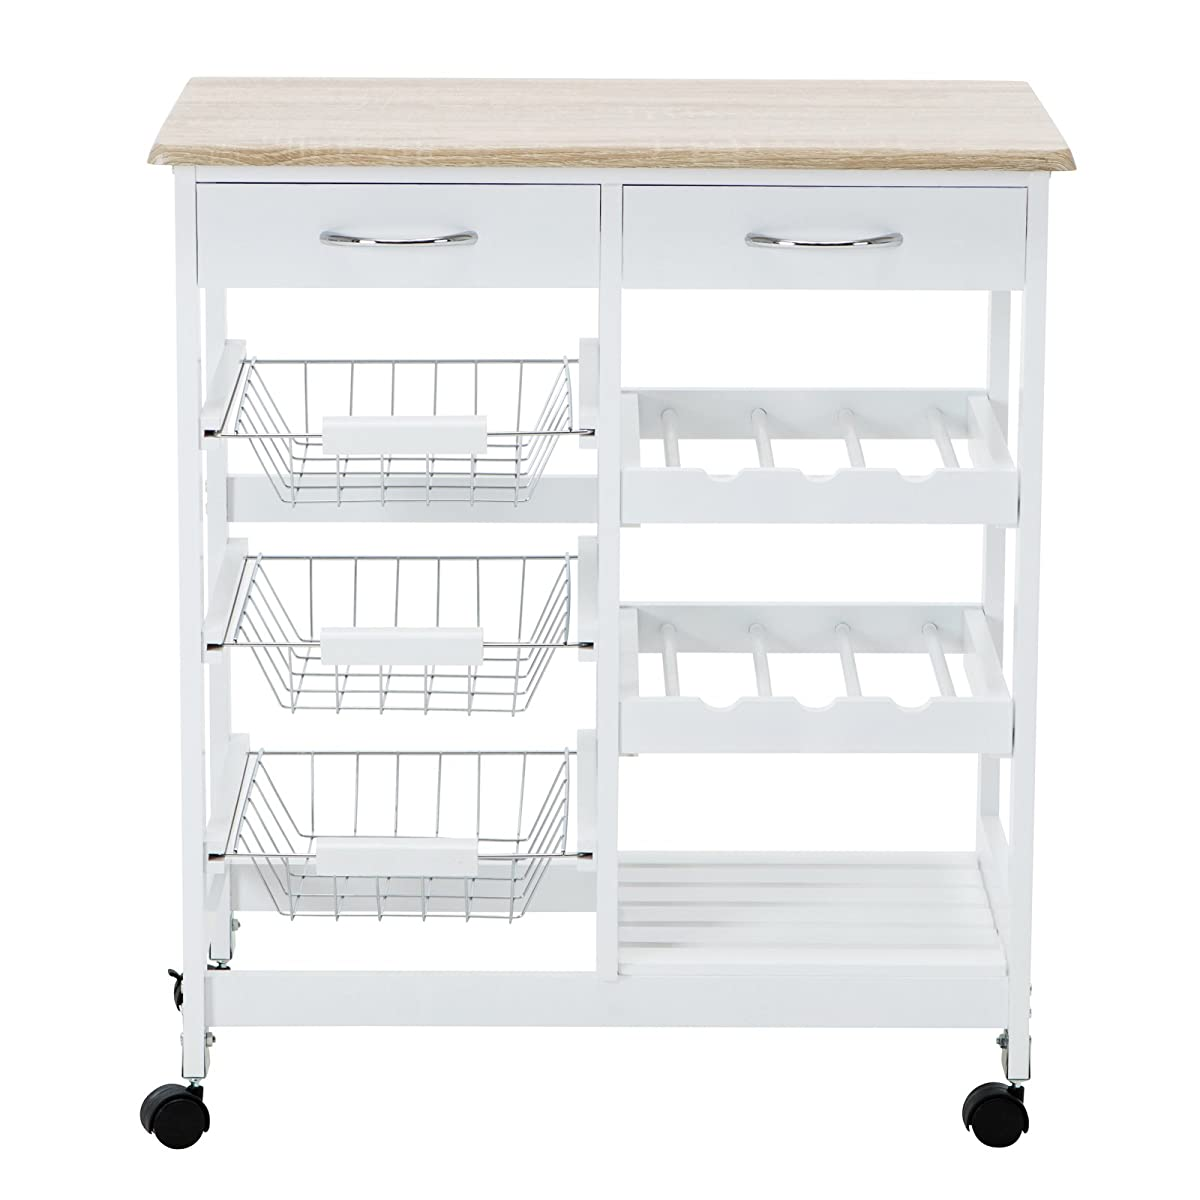 4 Family Kitchen Trolley Island Cart Portable Rolling